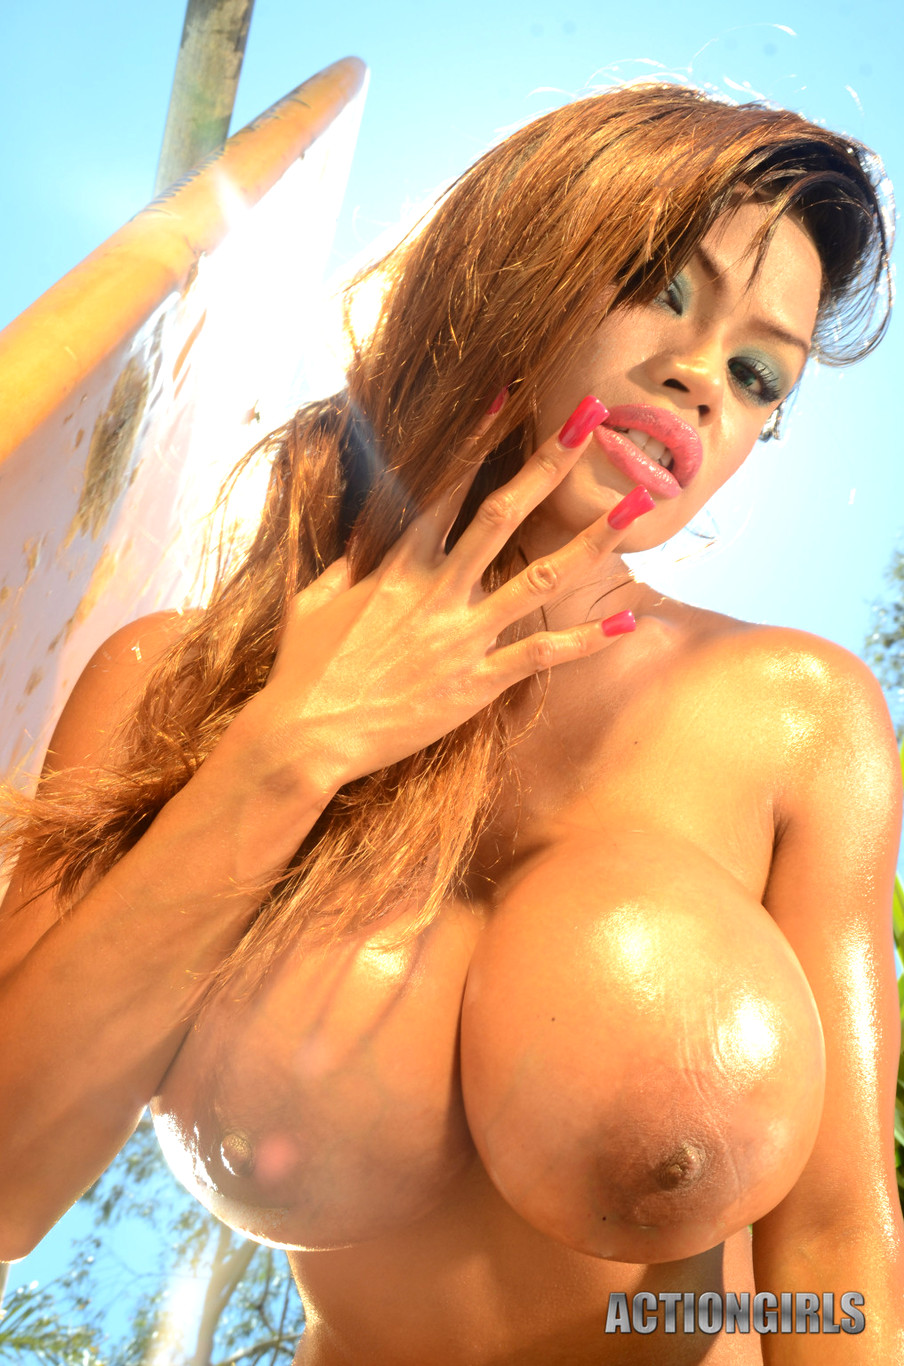 tits Action big girls with